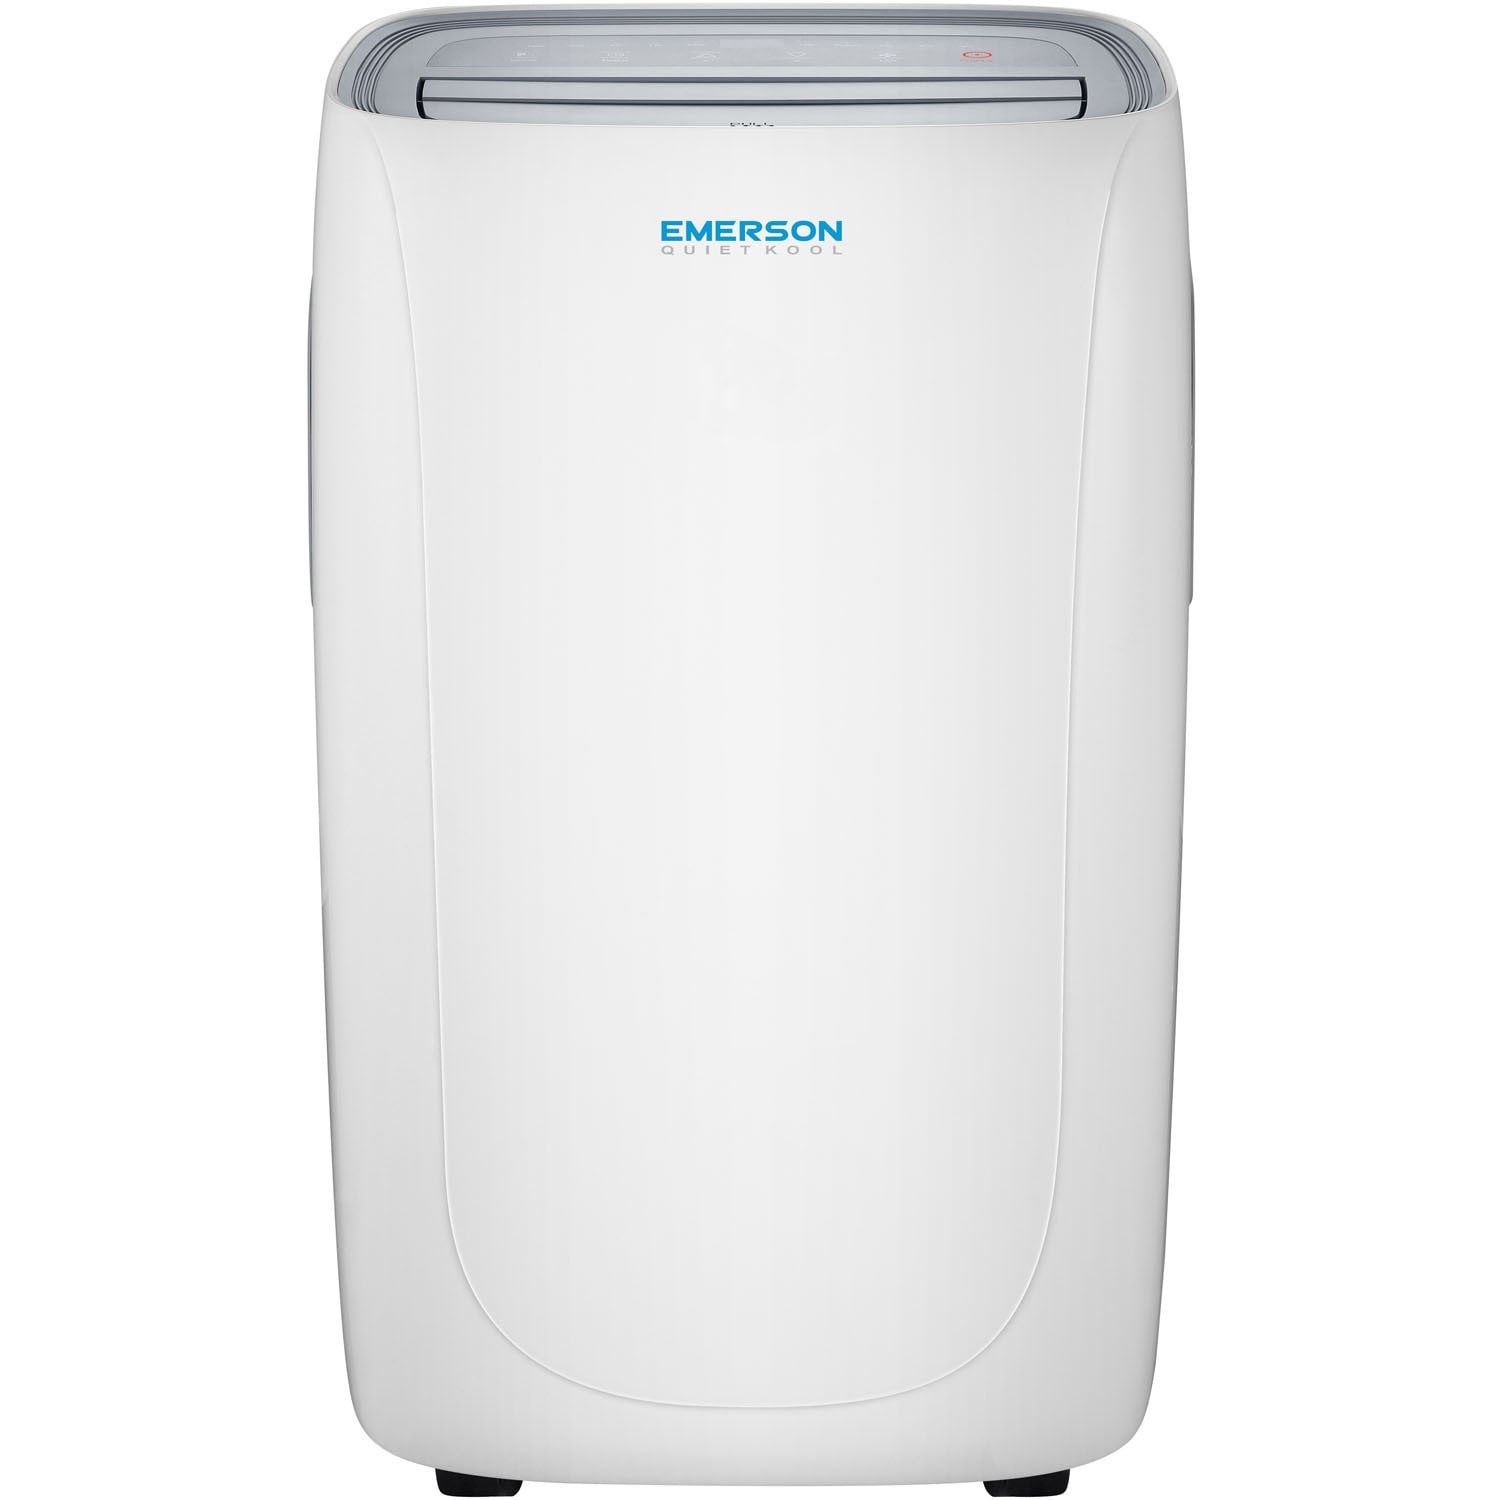 Emerson Quiet Kool 10,000 BTU Portable Air Conditioner wi...